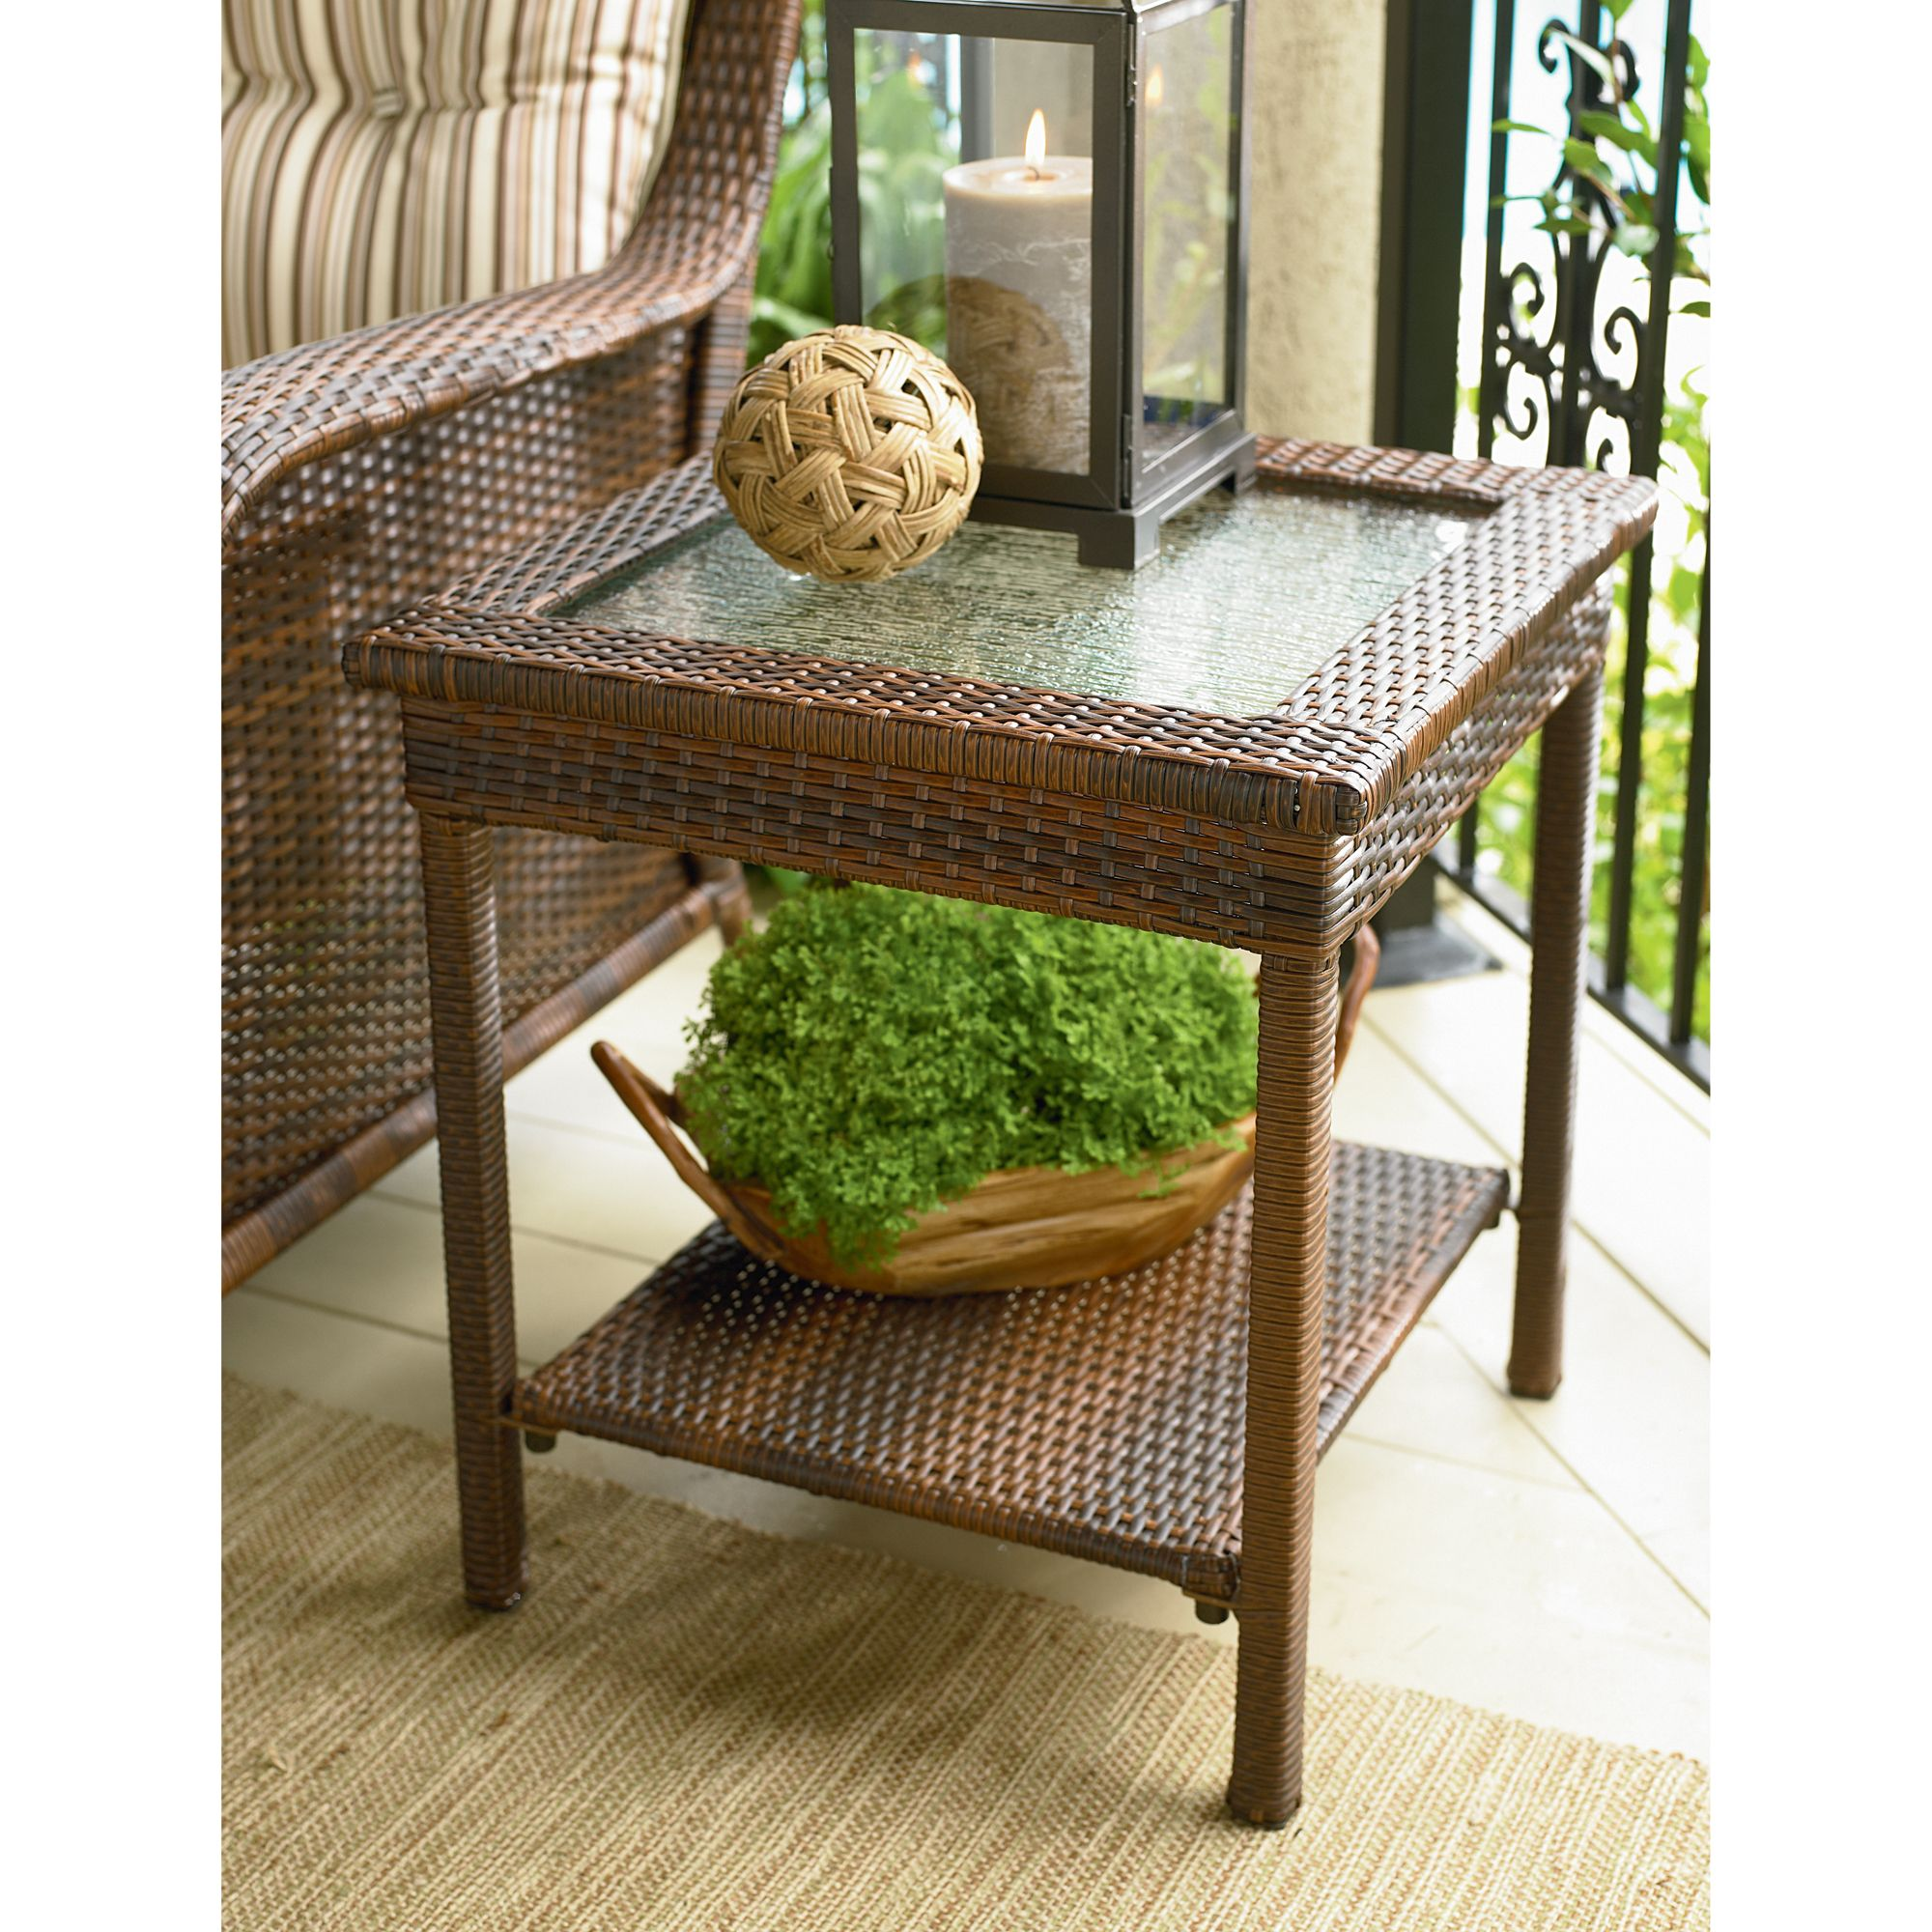 kitchen chair cushions canadian tire target grey mayfield lamp table transform your outdoor décor with